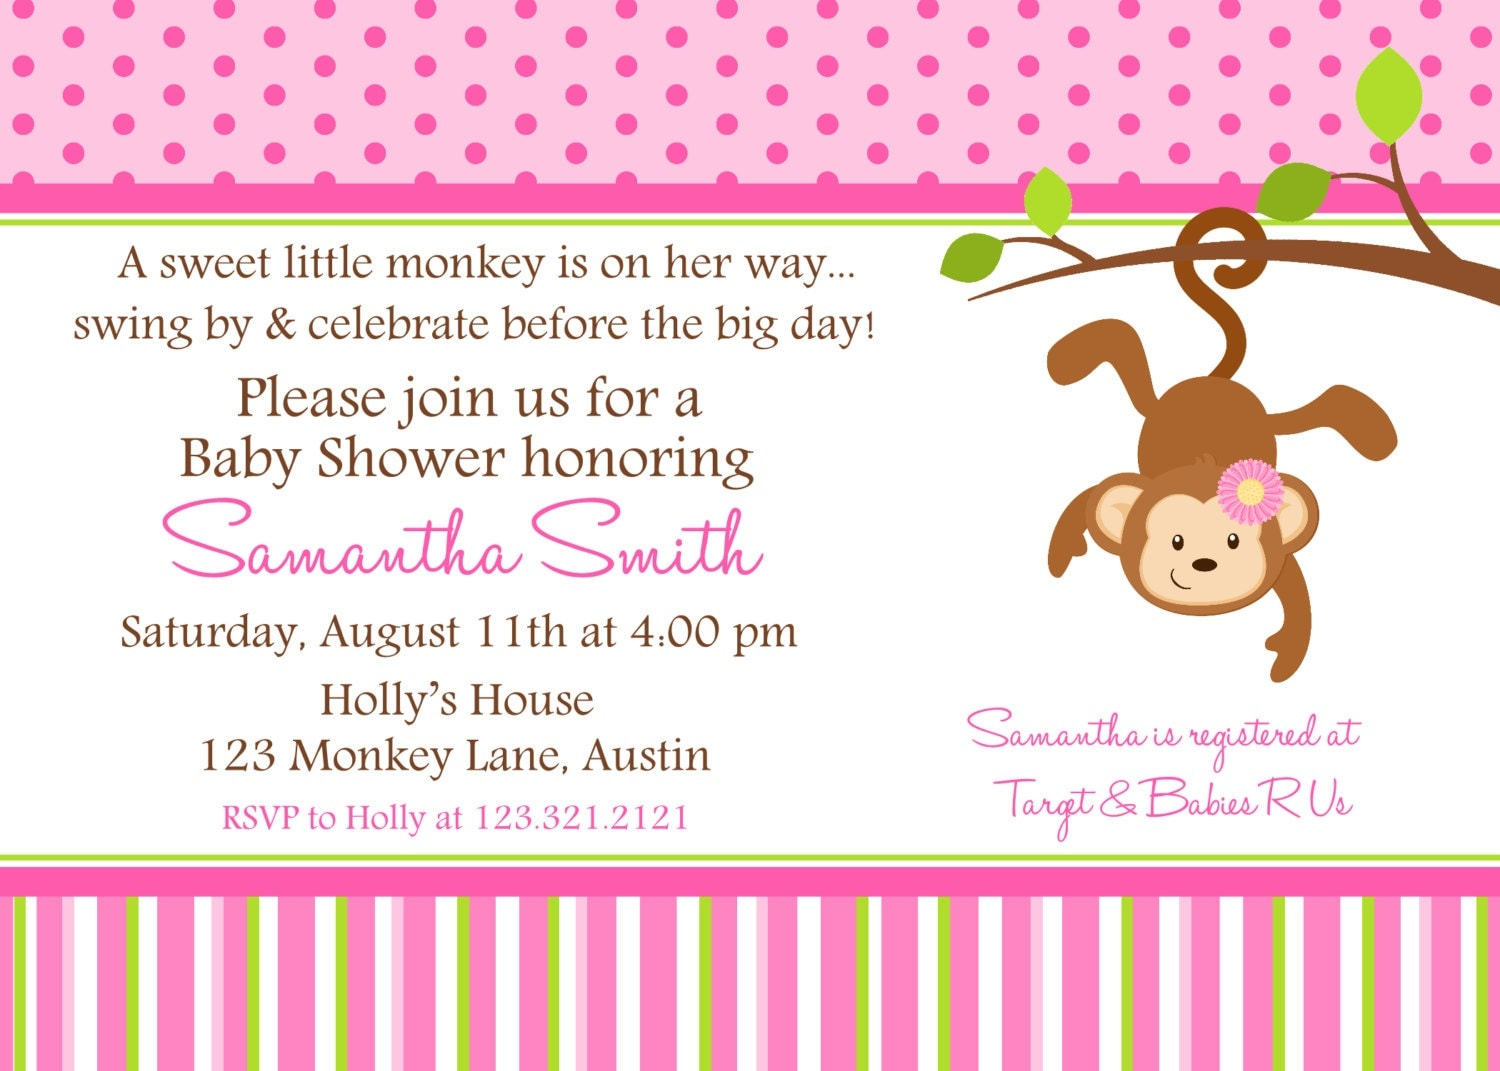 Monkey Baby Shower Invitations For Girl is awesome invitations design